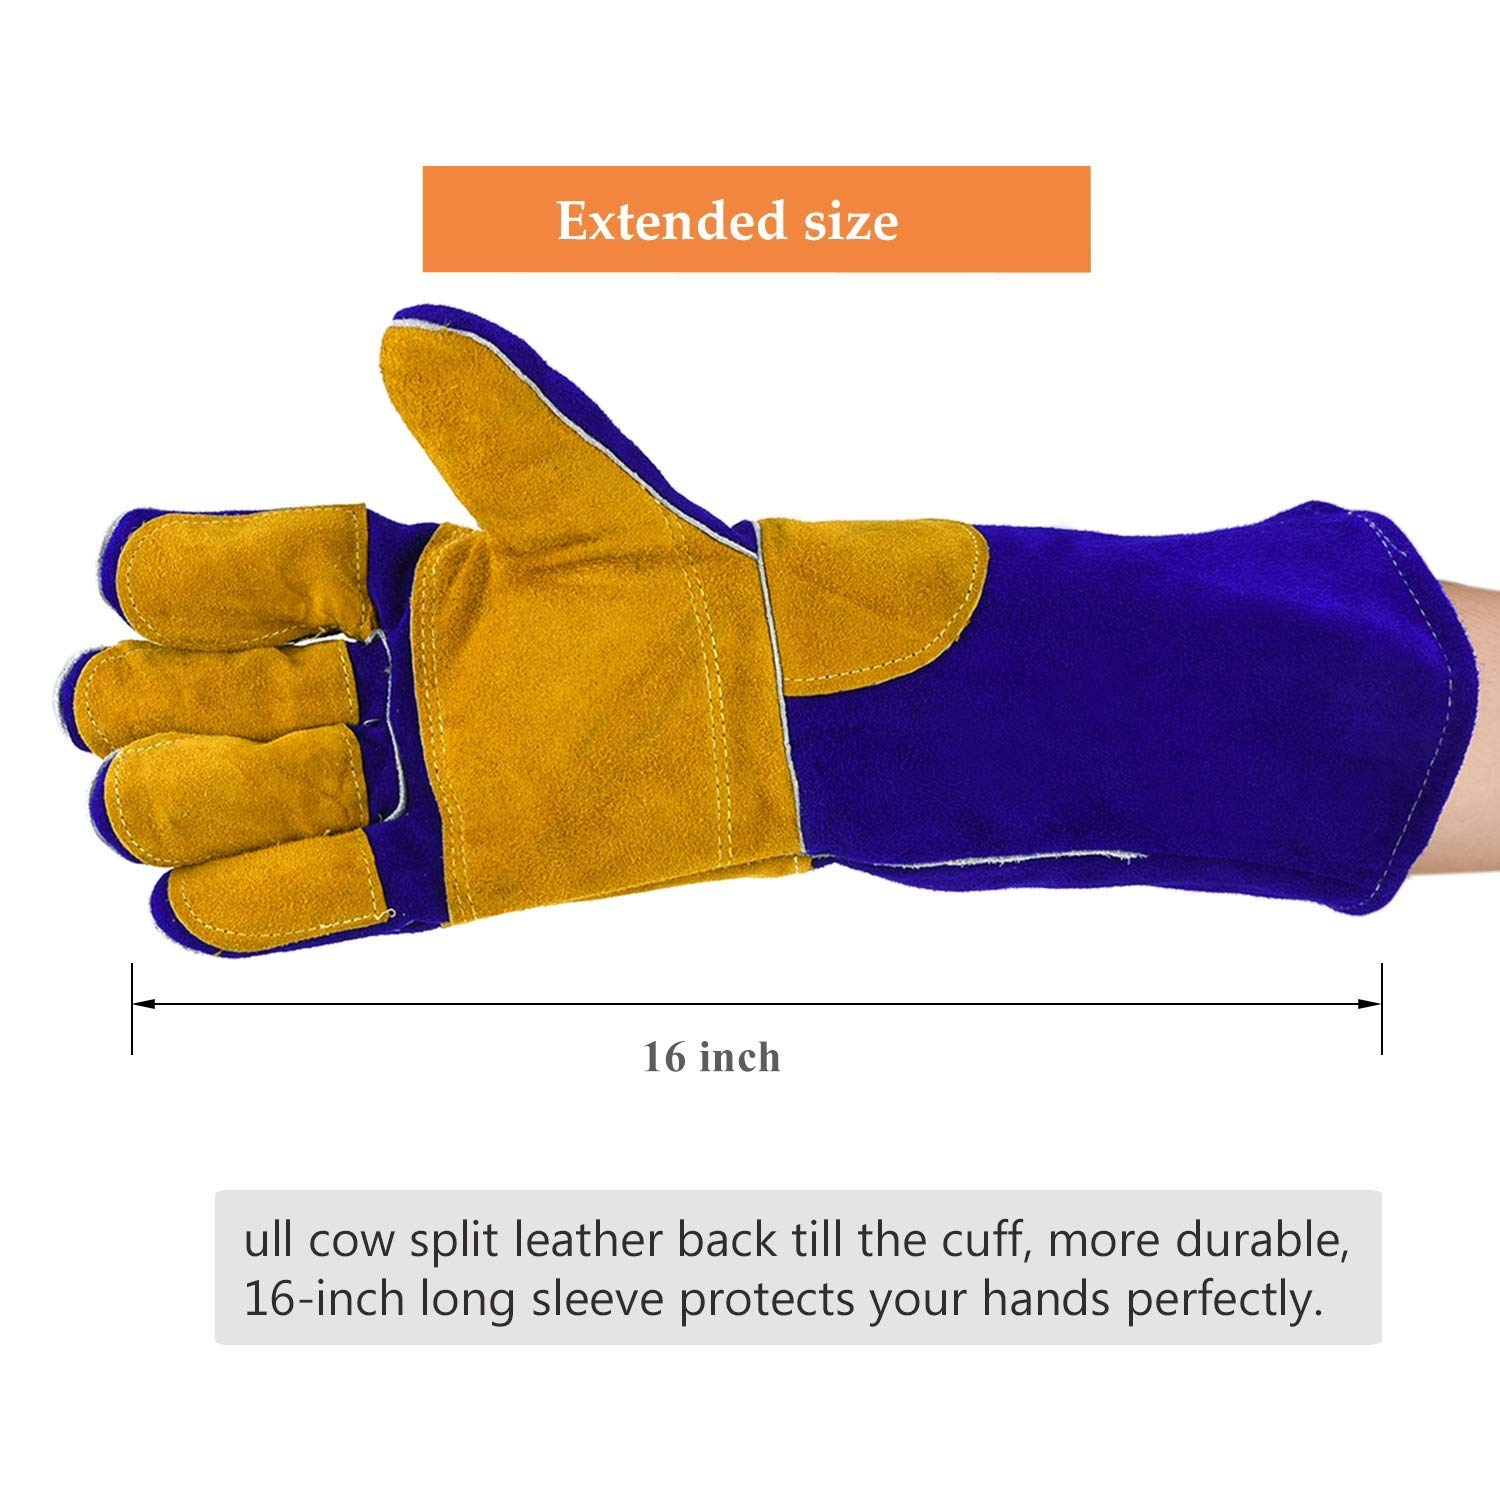 AINIYF Heavy Duty Heat Resistant & Flame Retardant Welding & BBQ Gloves, Premium Cowhide Leather, Long 15.7 Inch Forearm Protection, Blue, Size Large by AINIYF (Image #4)